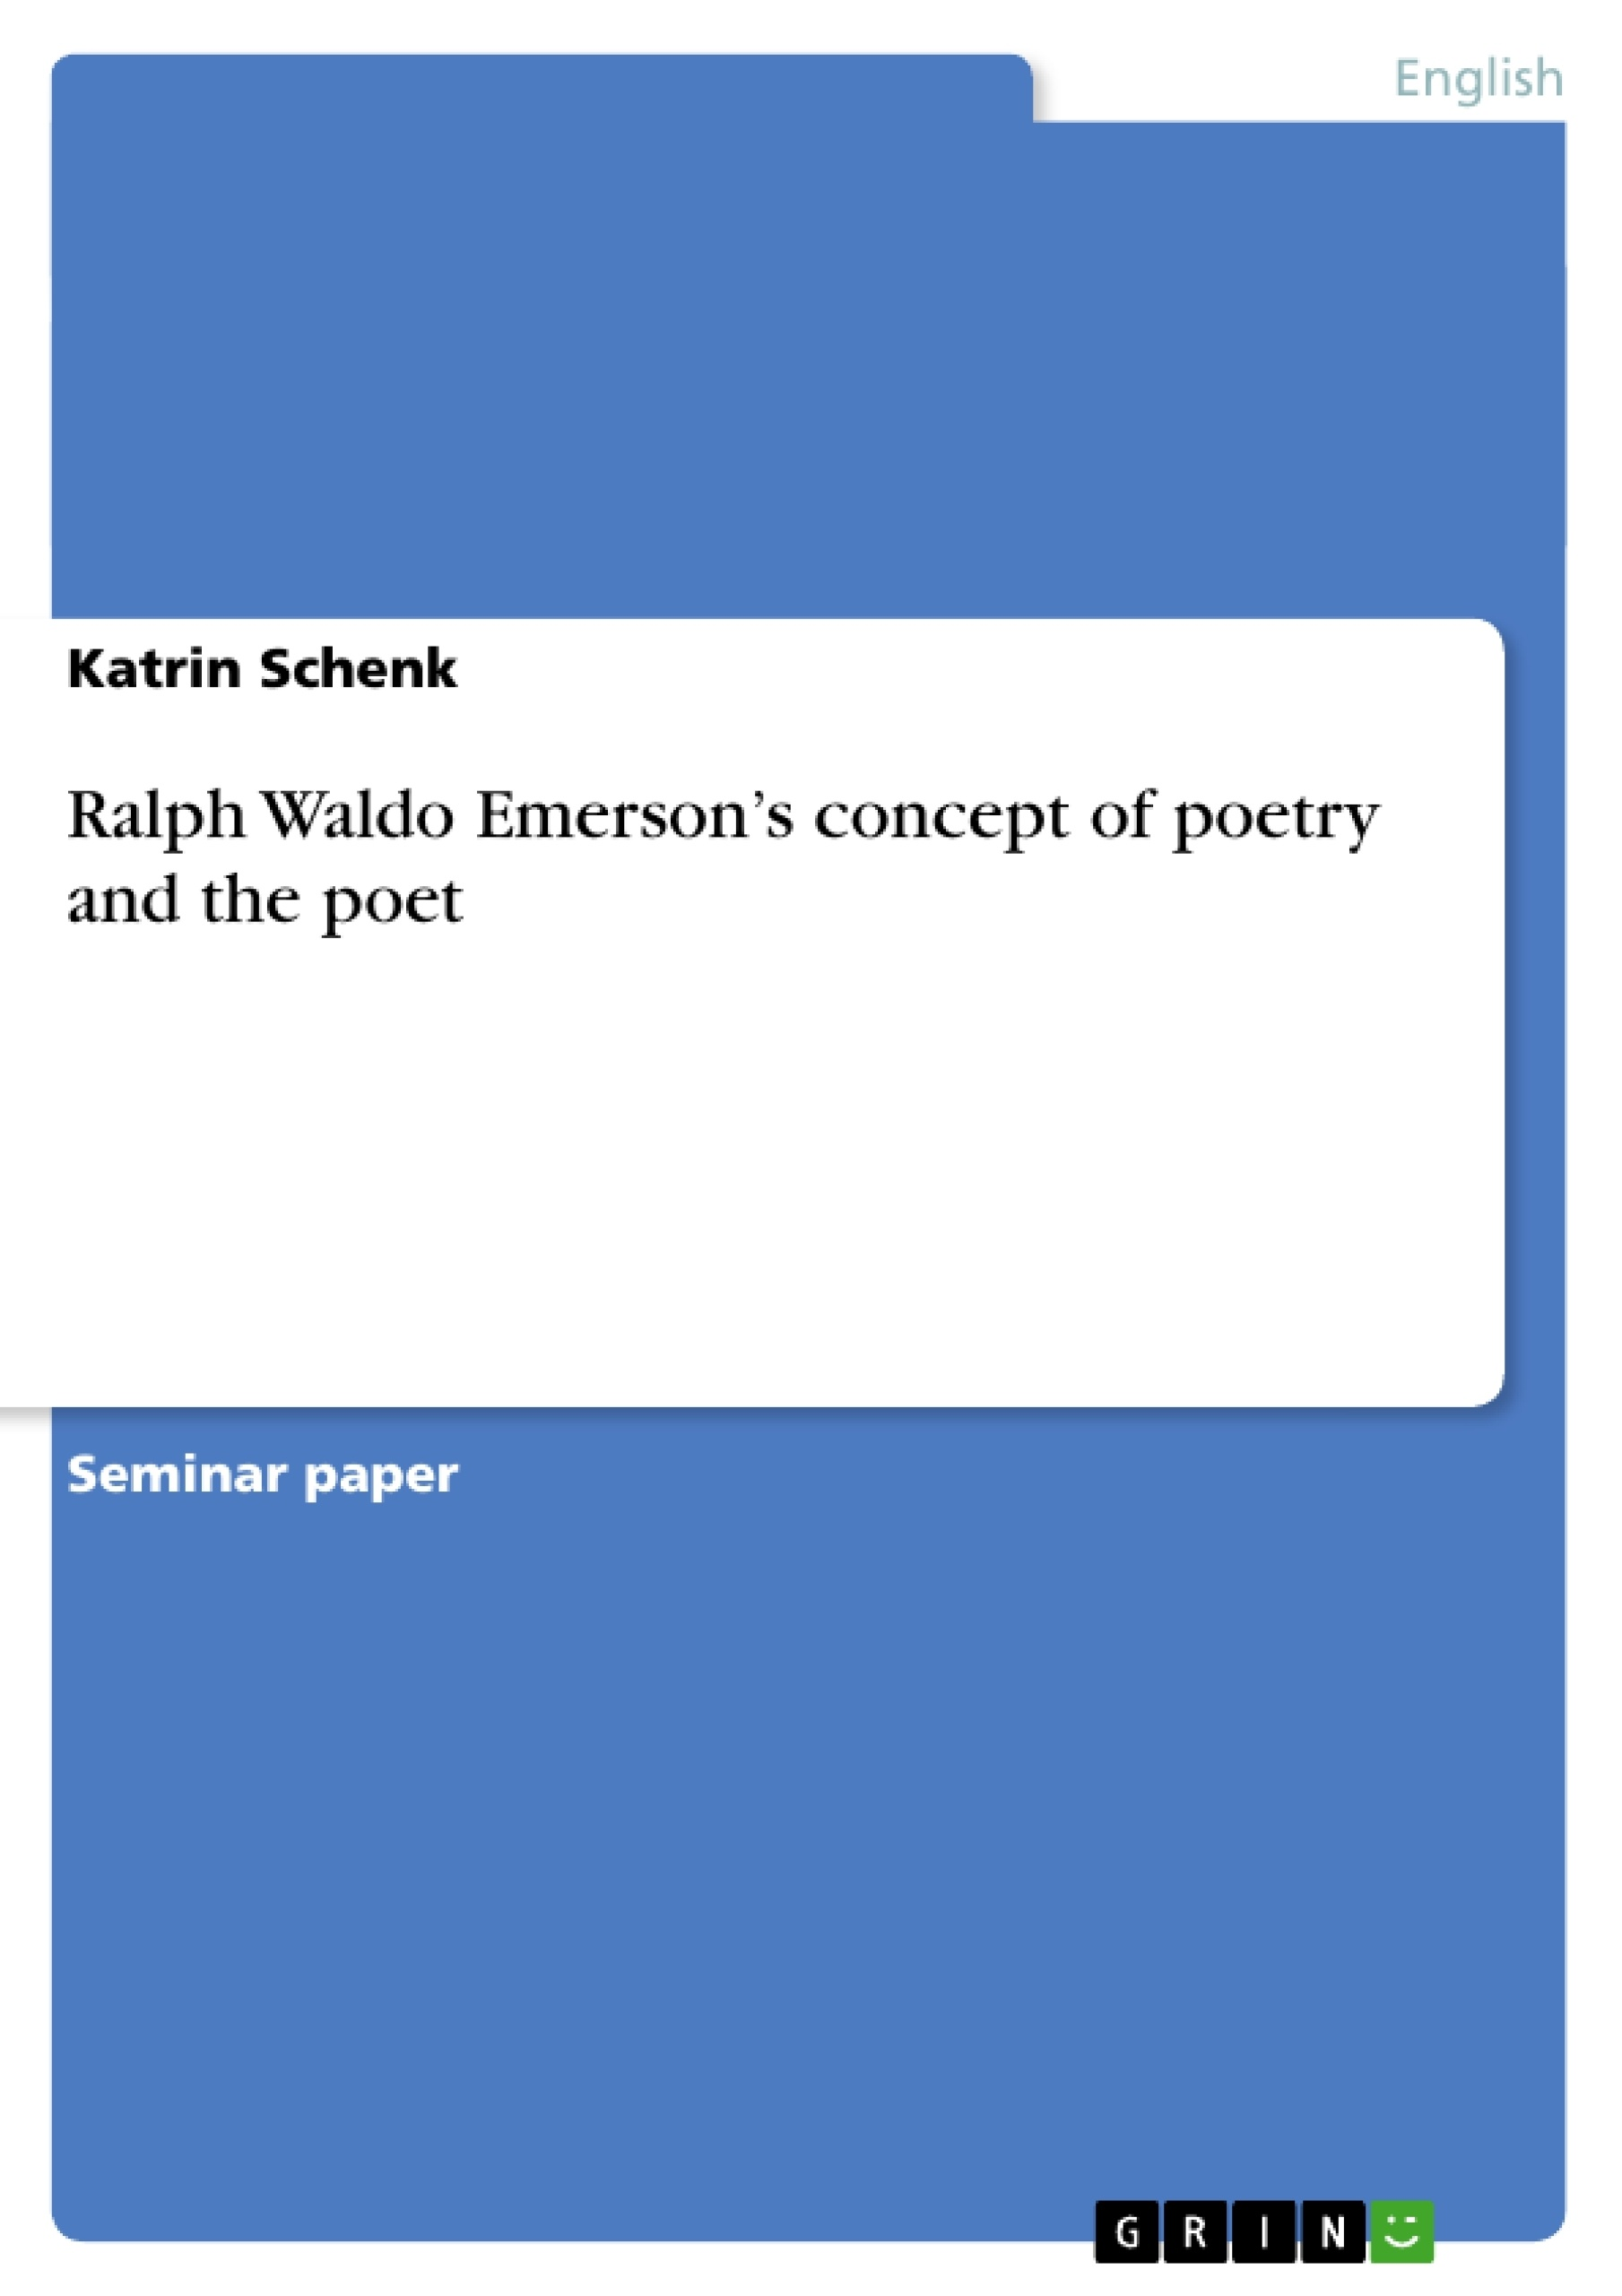 Title: Ralph Waldo Emerson's concept of poetry and the poet